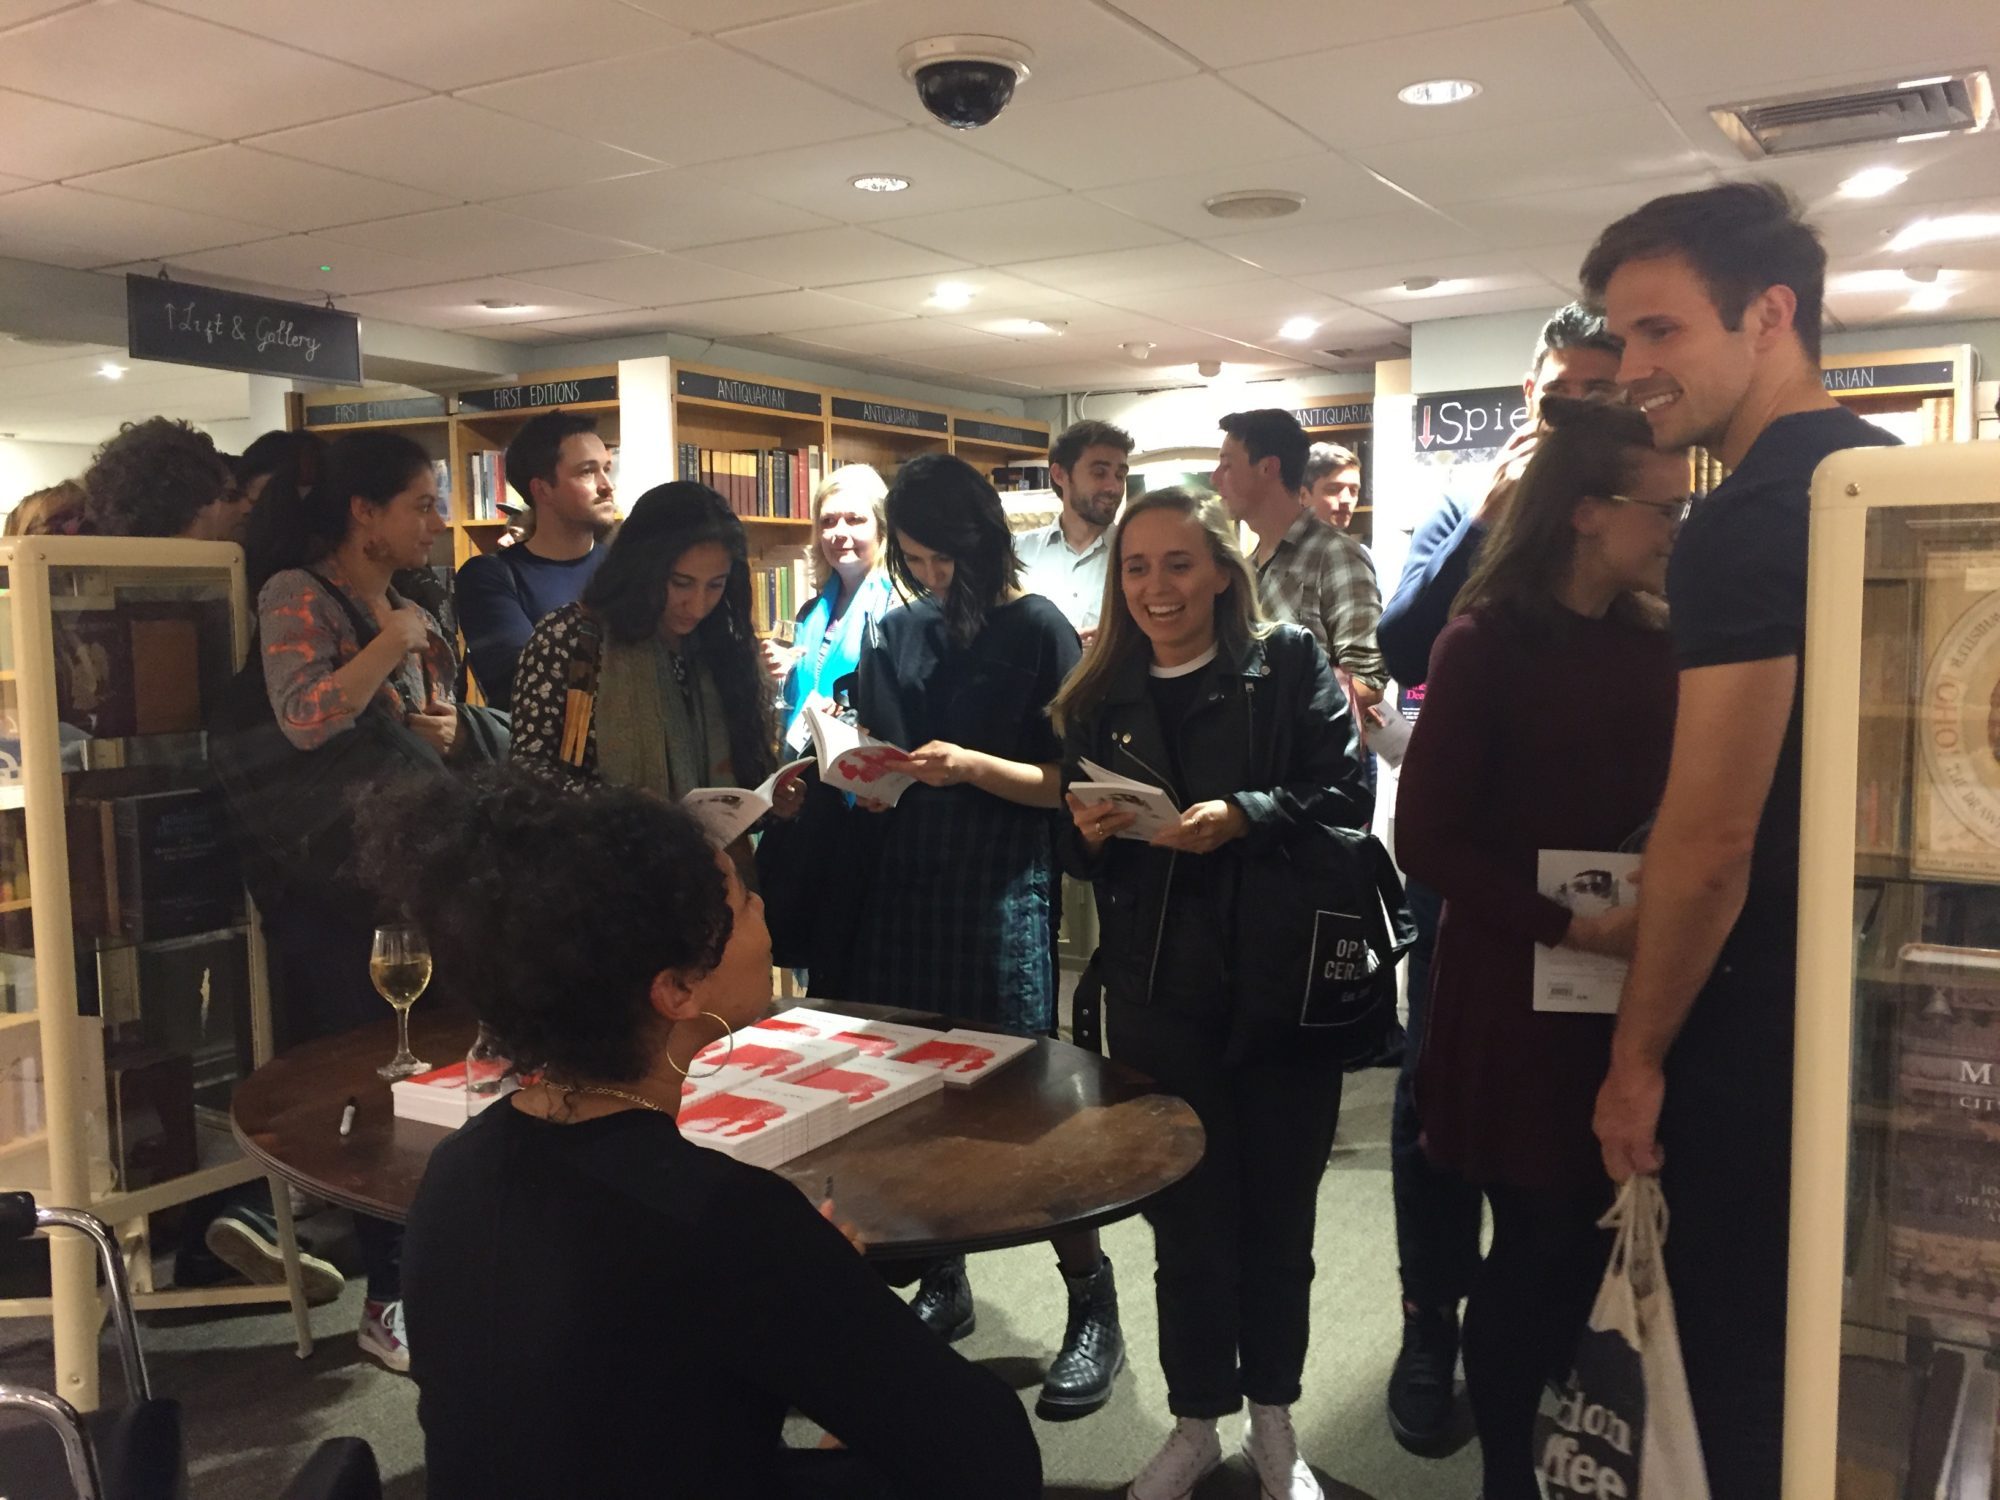 Deanna Rodger signs her new poetry collection I Did It Too